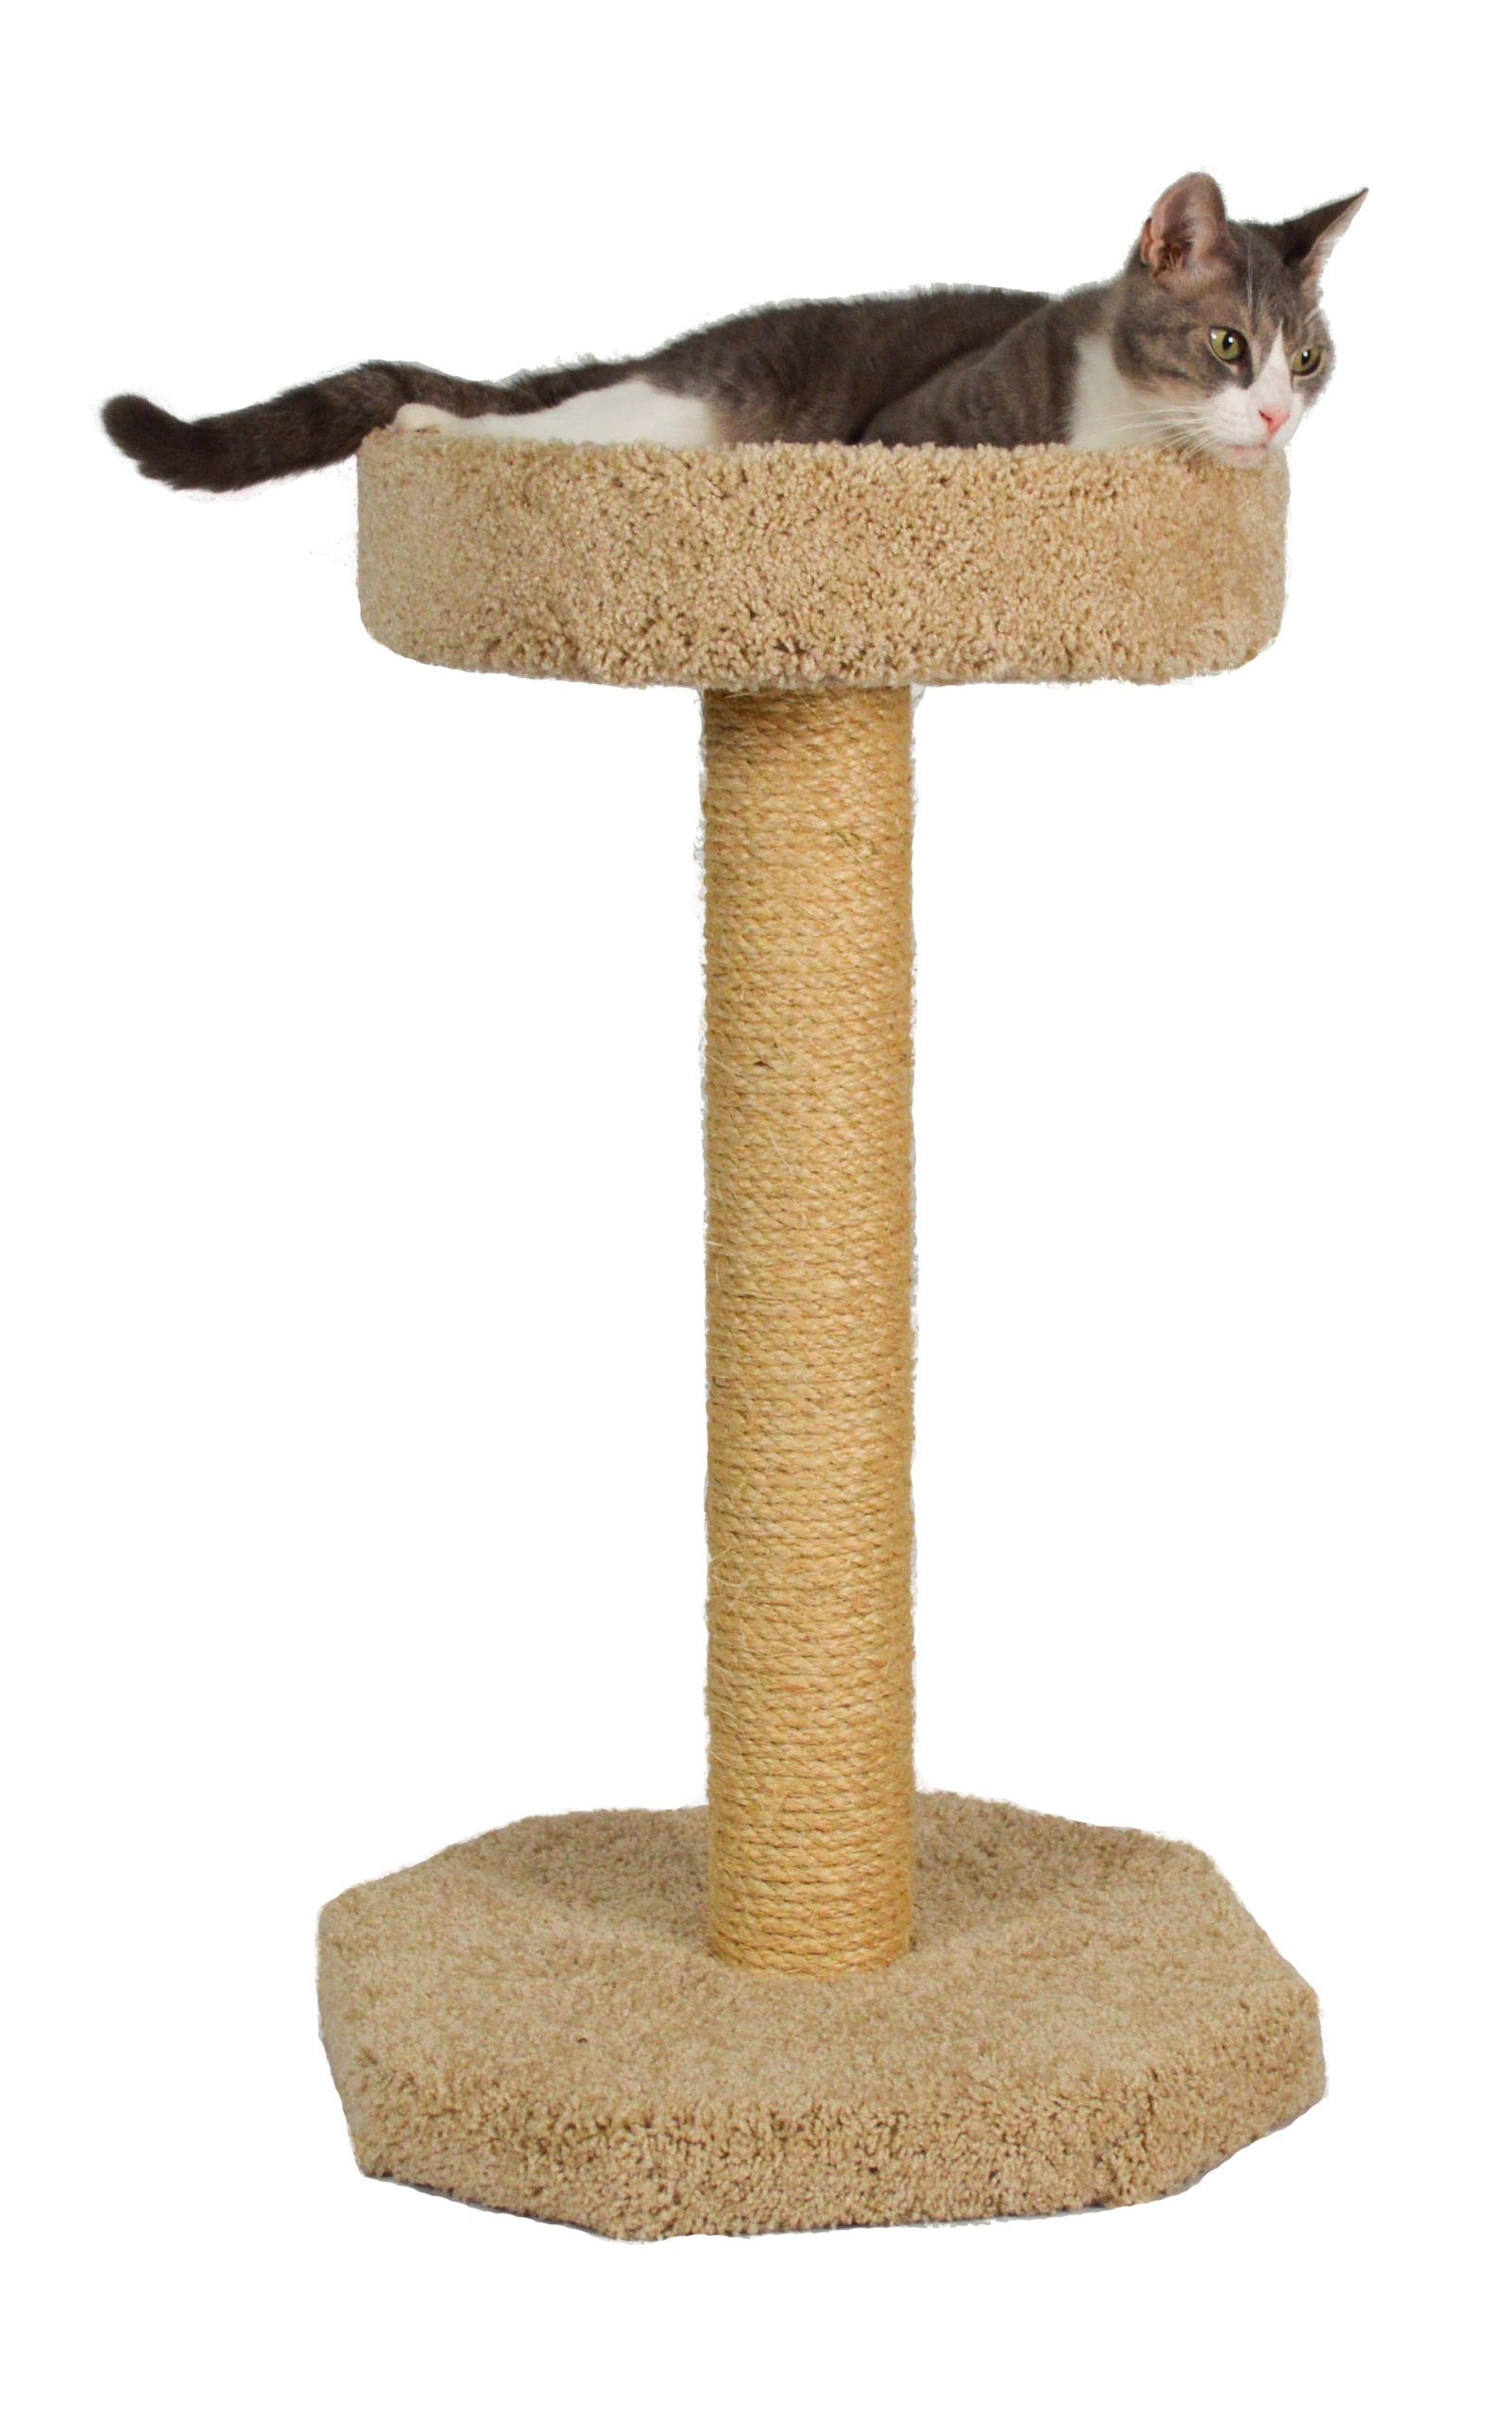 Molly and Friends ''Feline Recliner Premium Handmade One Tier Sisal Cat Scratching Post Furniture with Bed, Model Scr/b, Beige by Molly and Friends